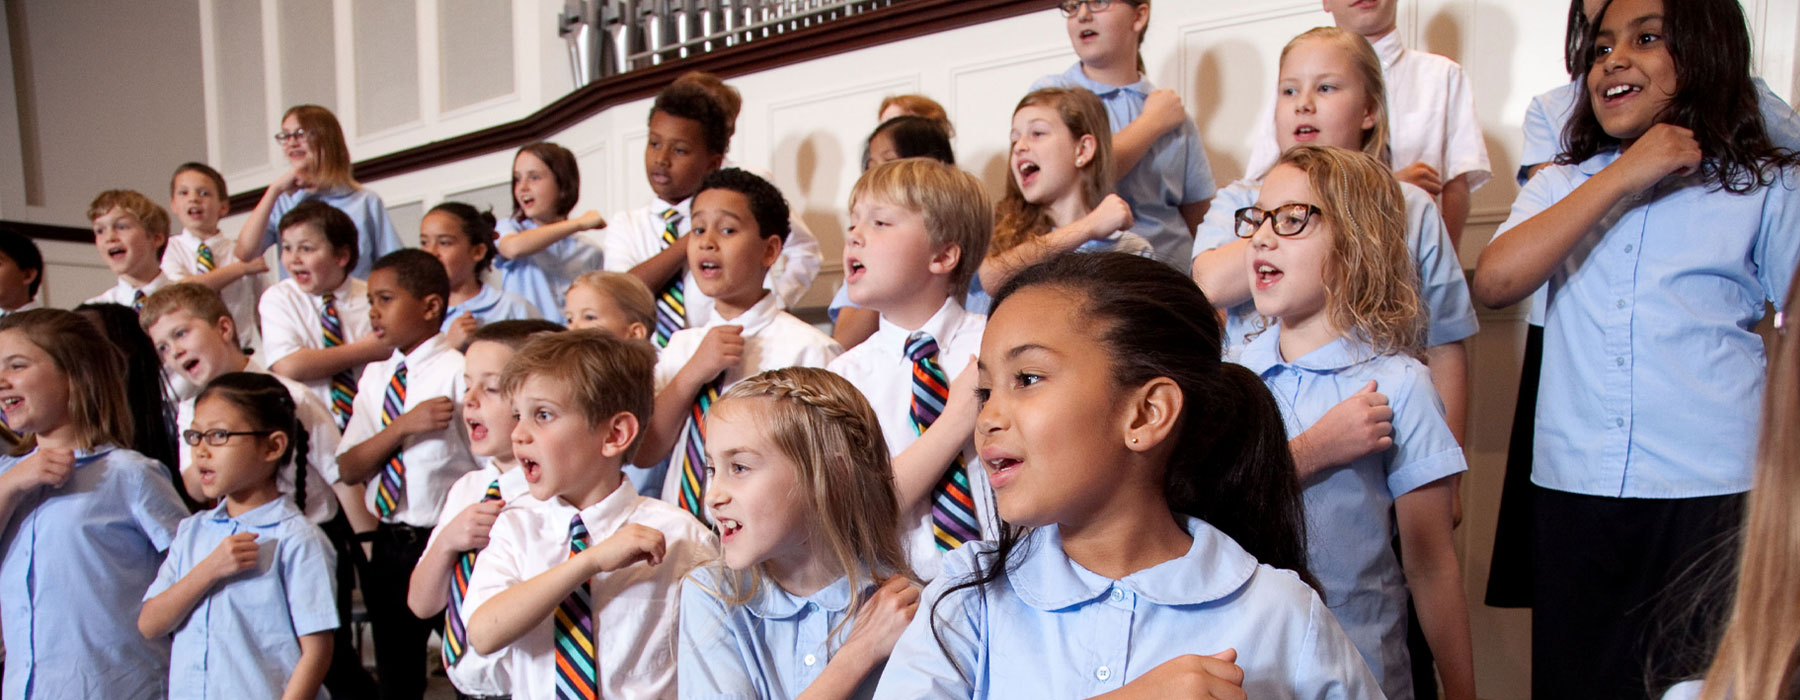 children's choir performing